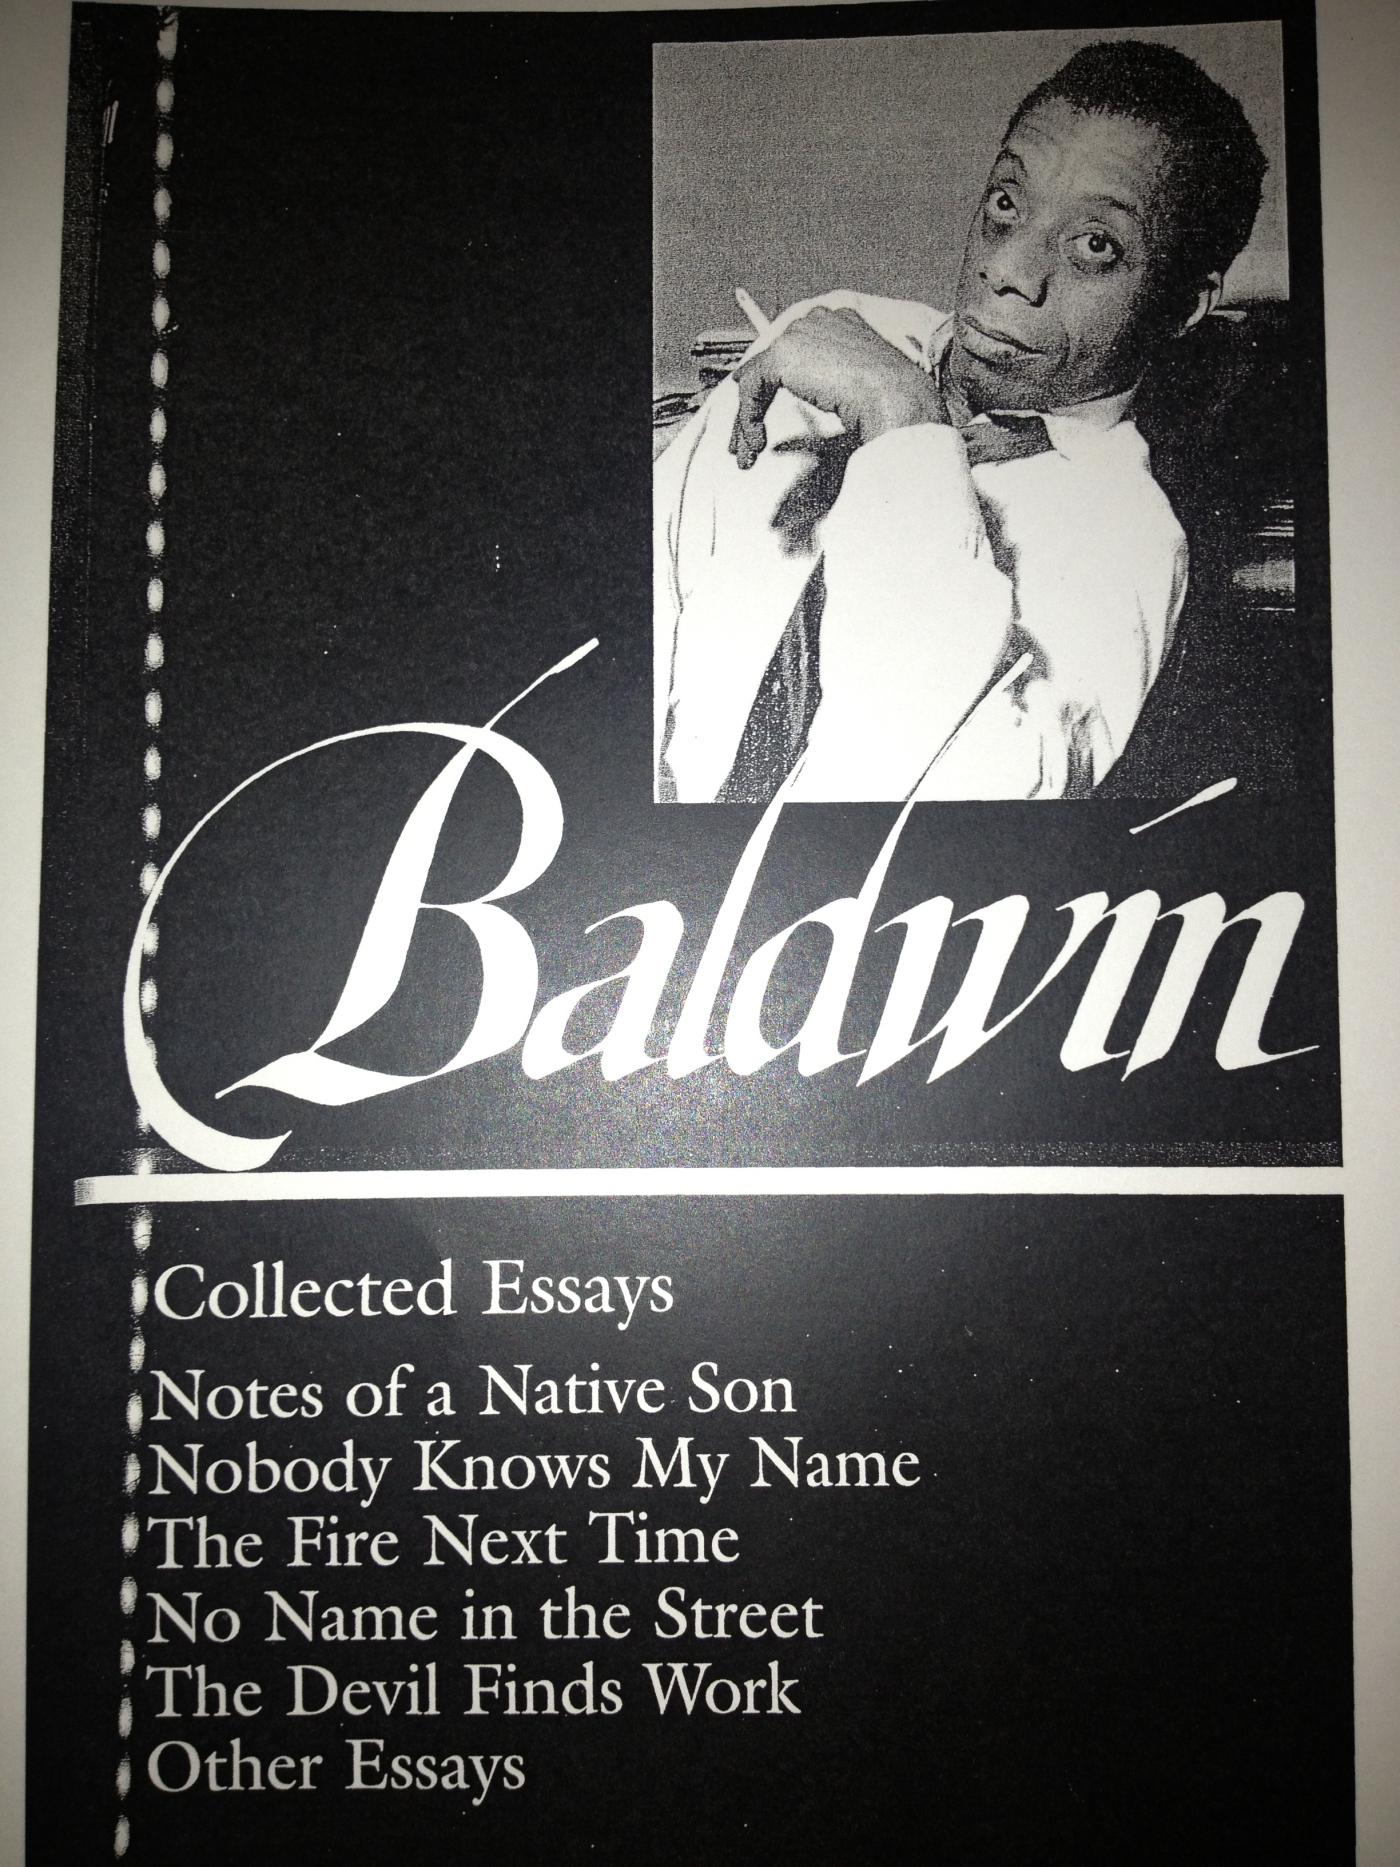 001 Img 4408w1400h9999 James Baldwin Collected Essays Essay Wondrous Google Books Pdf Table Of Contents Full